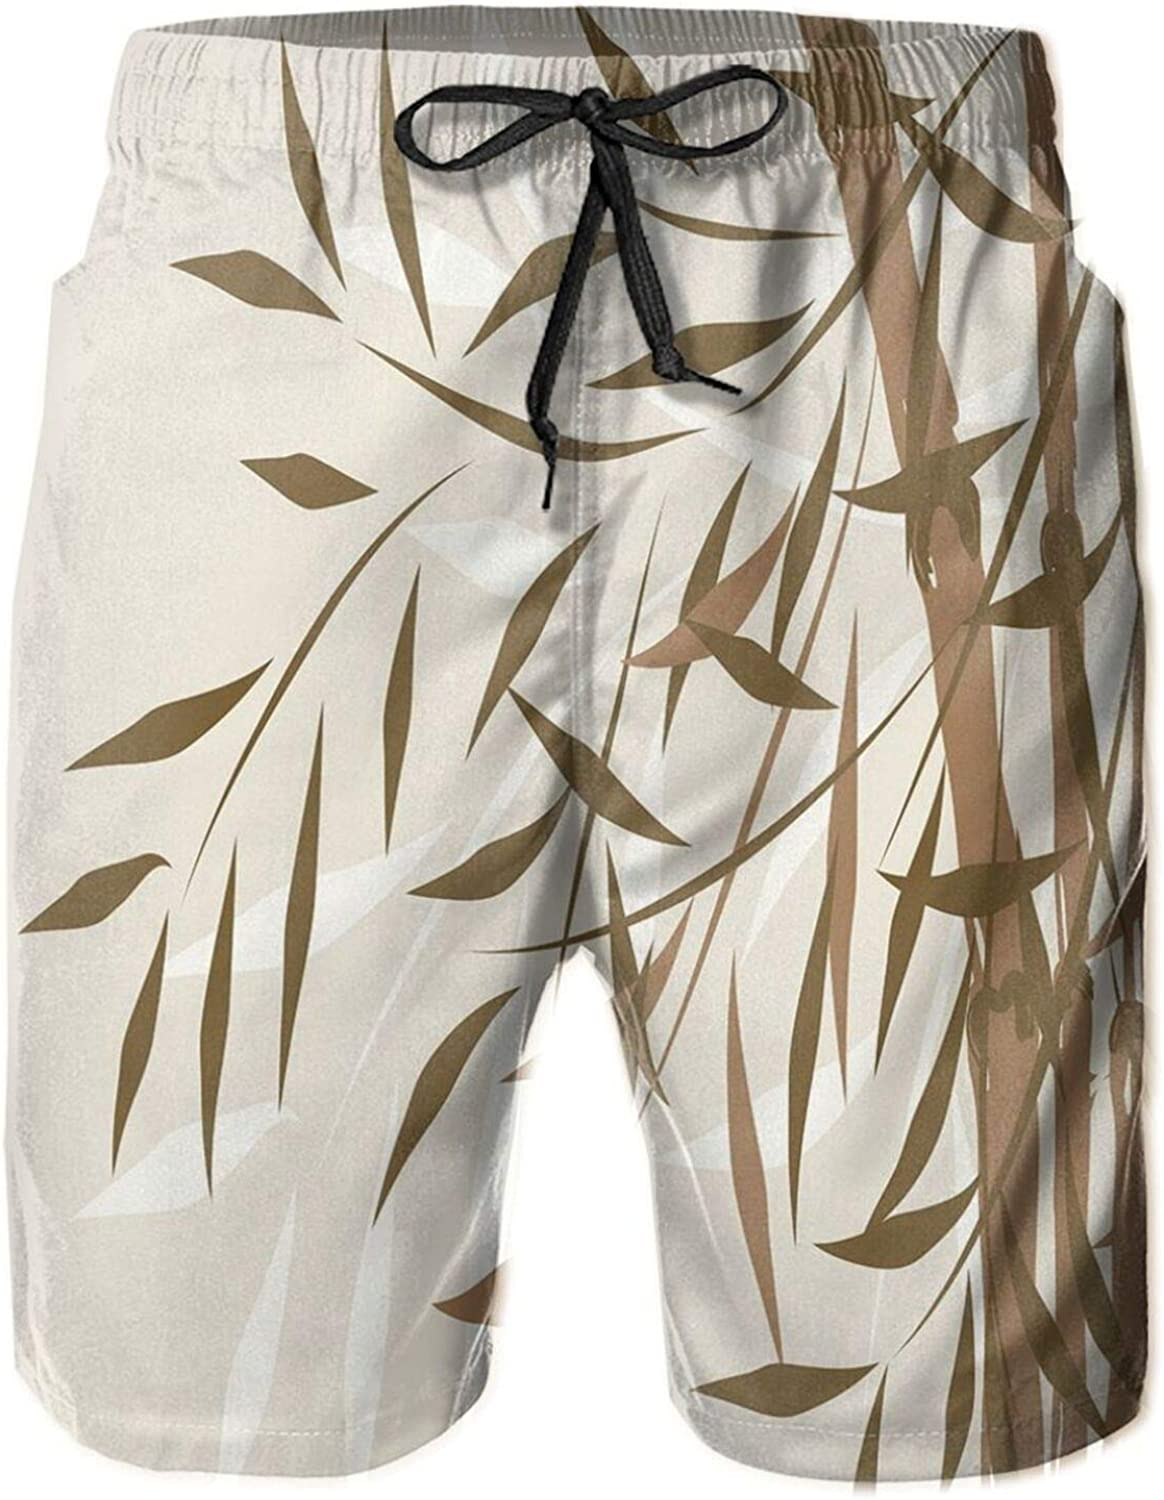 Bamboo Design with Soft Colors Chinese Culture Inspired Artwork Eastern Pattern Mens Swim Shorts Casual Workout Short Pants Drawstring Beach Shorts,M